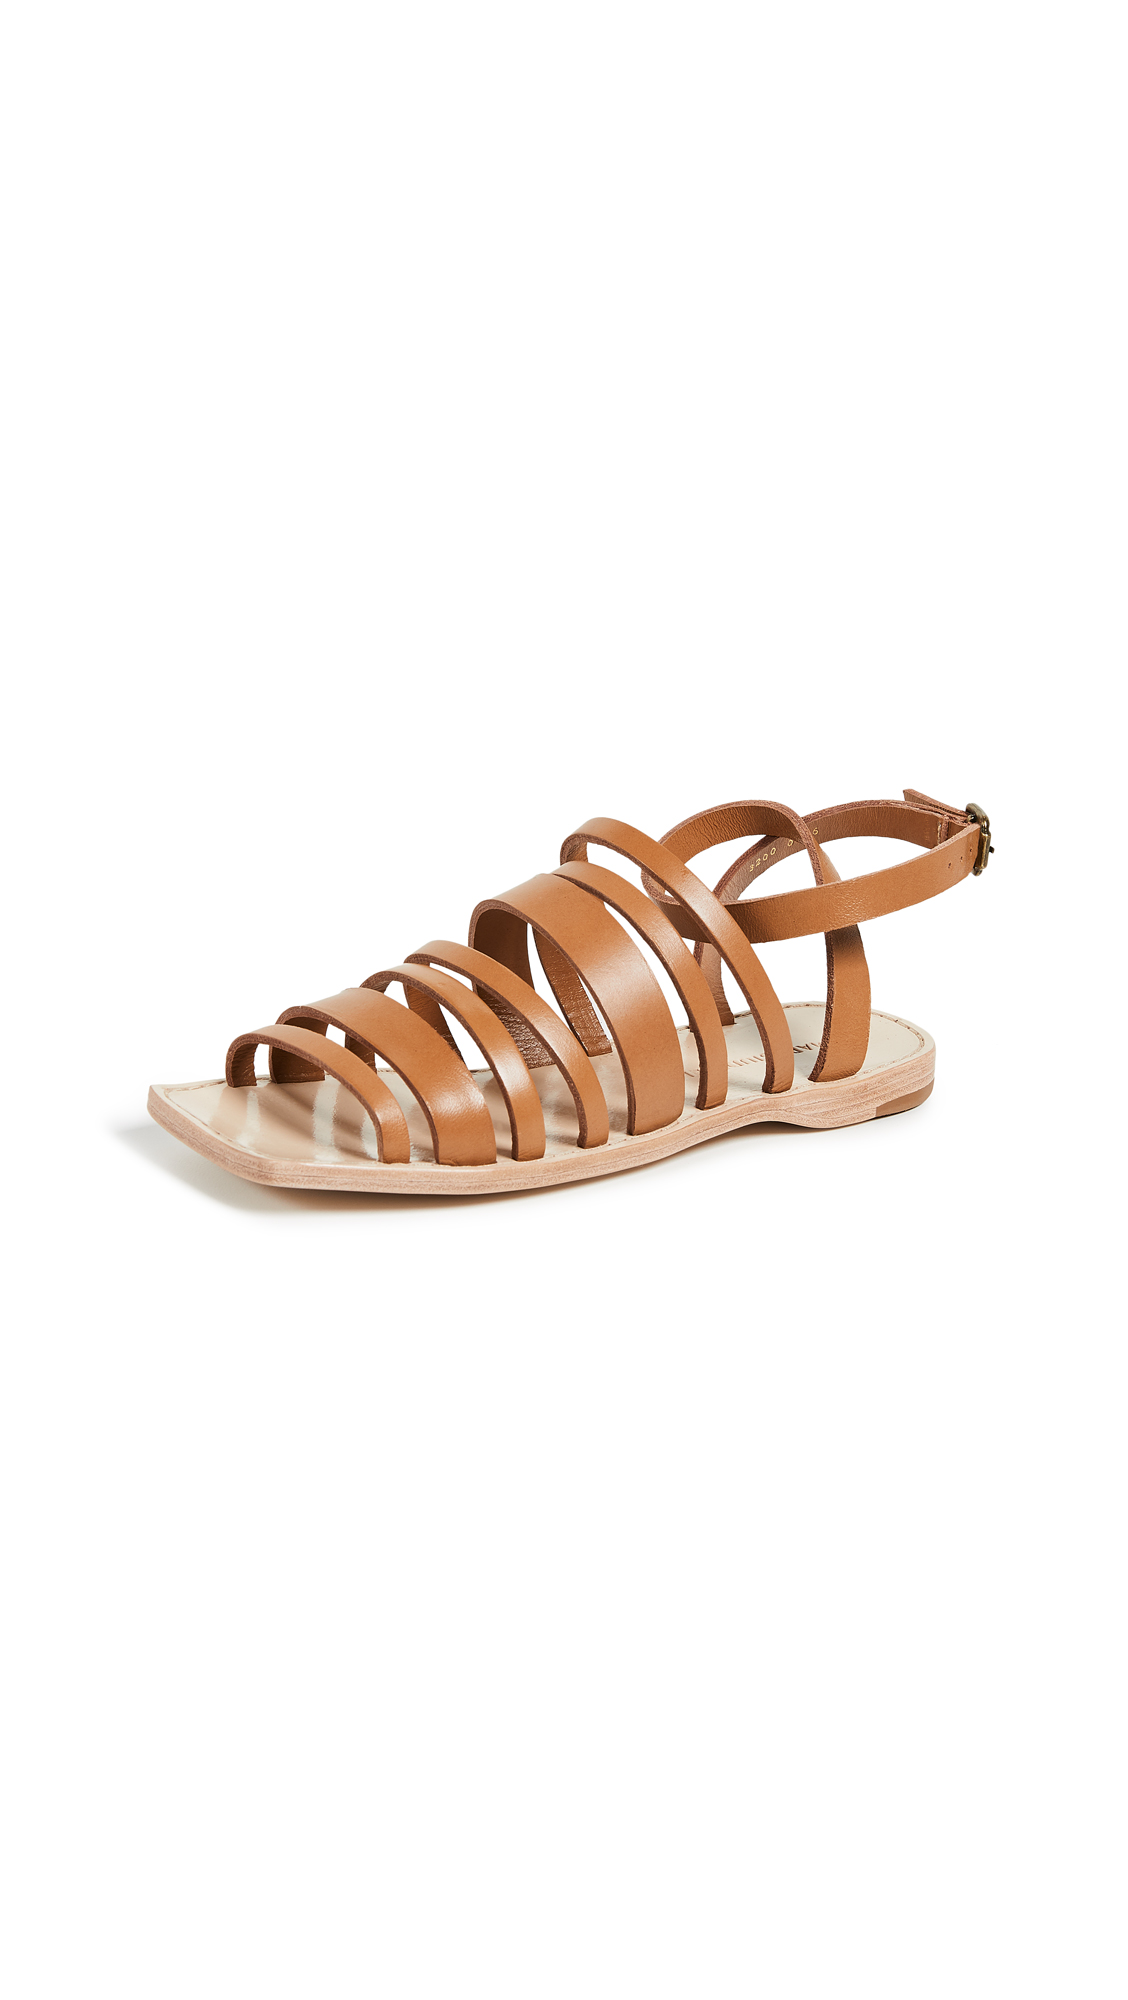 Mari Giudicelli Costa Sandals